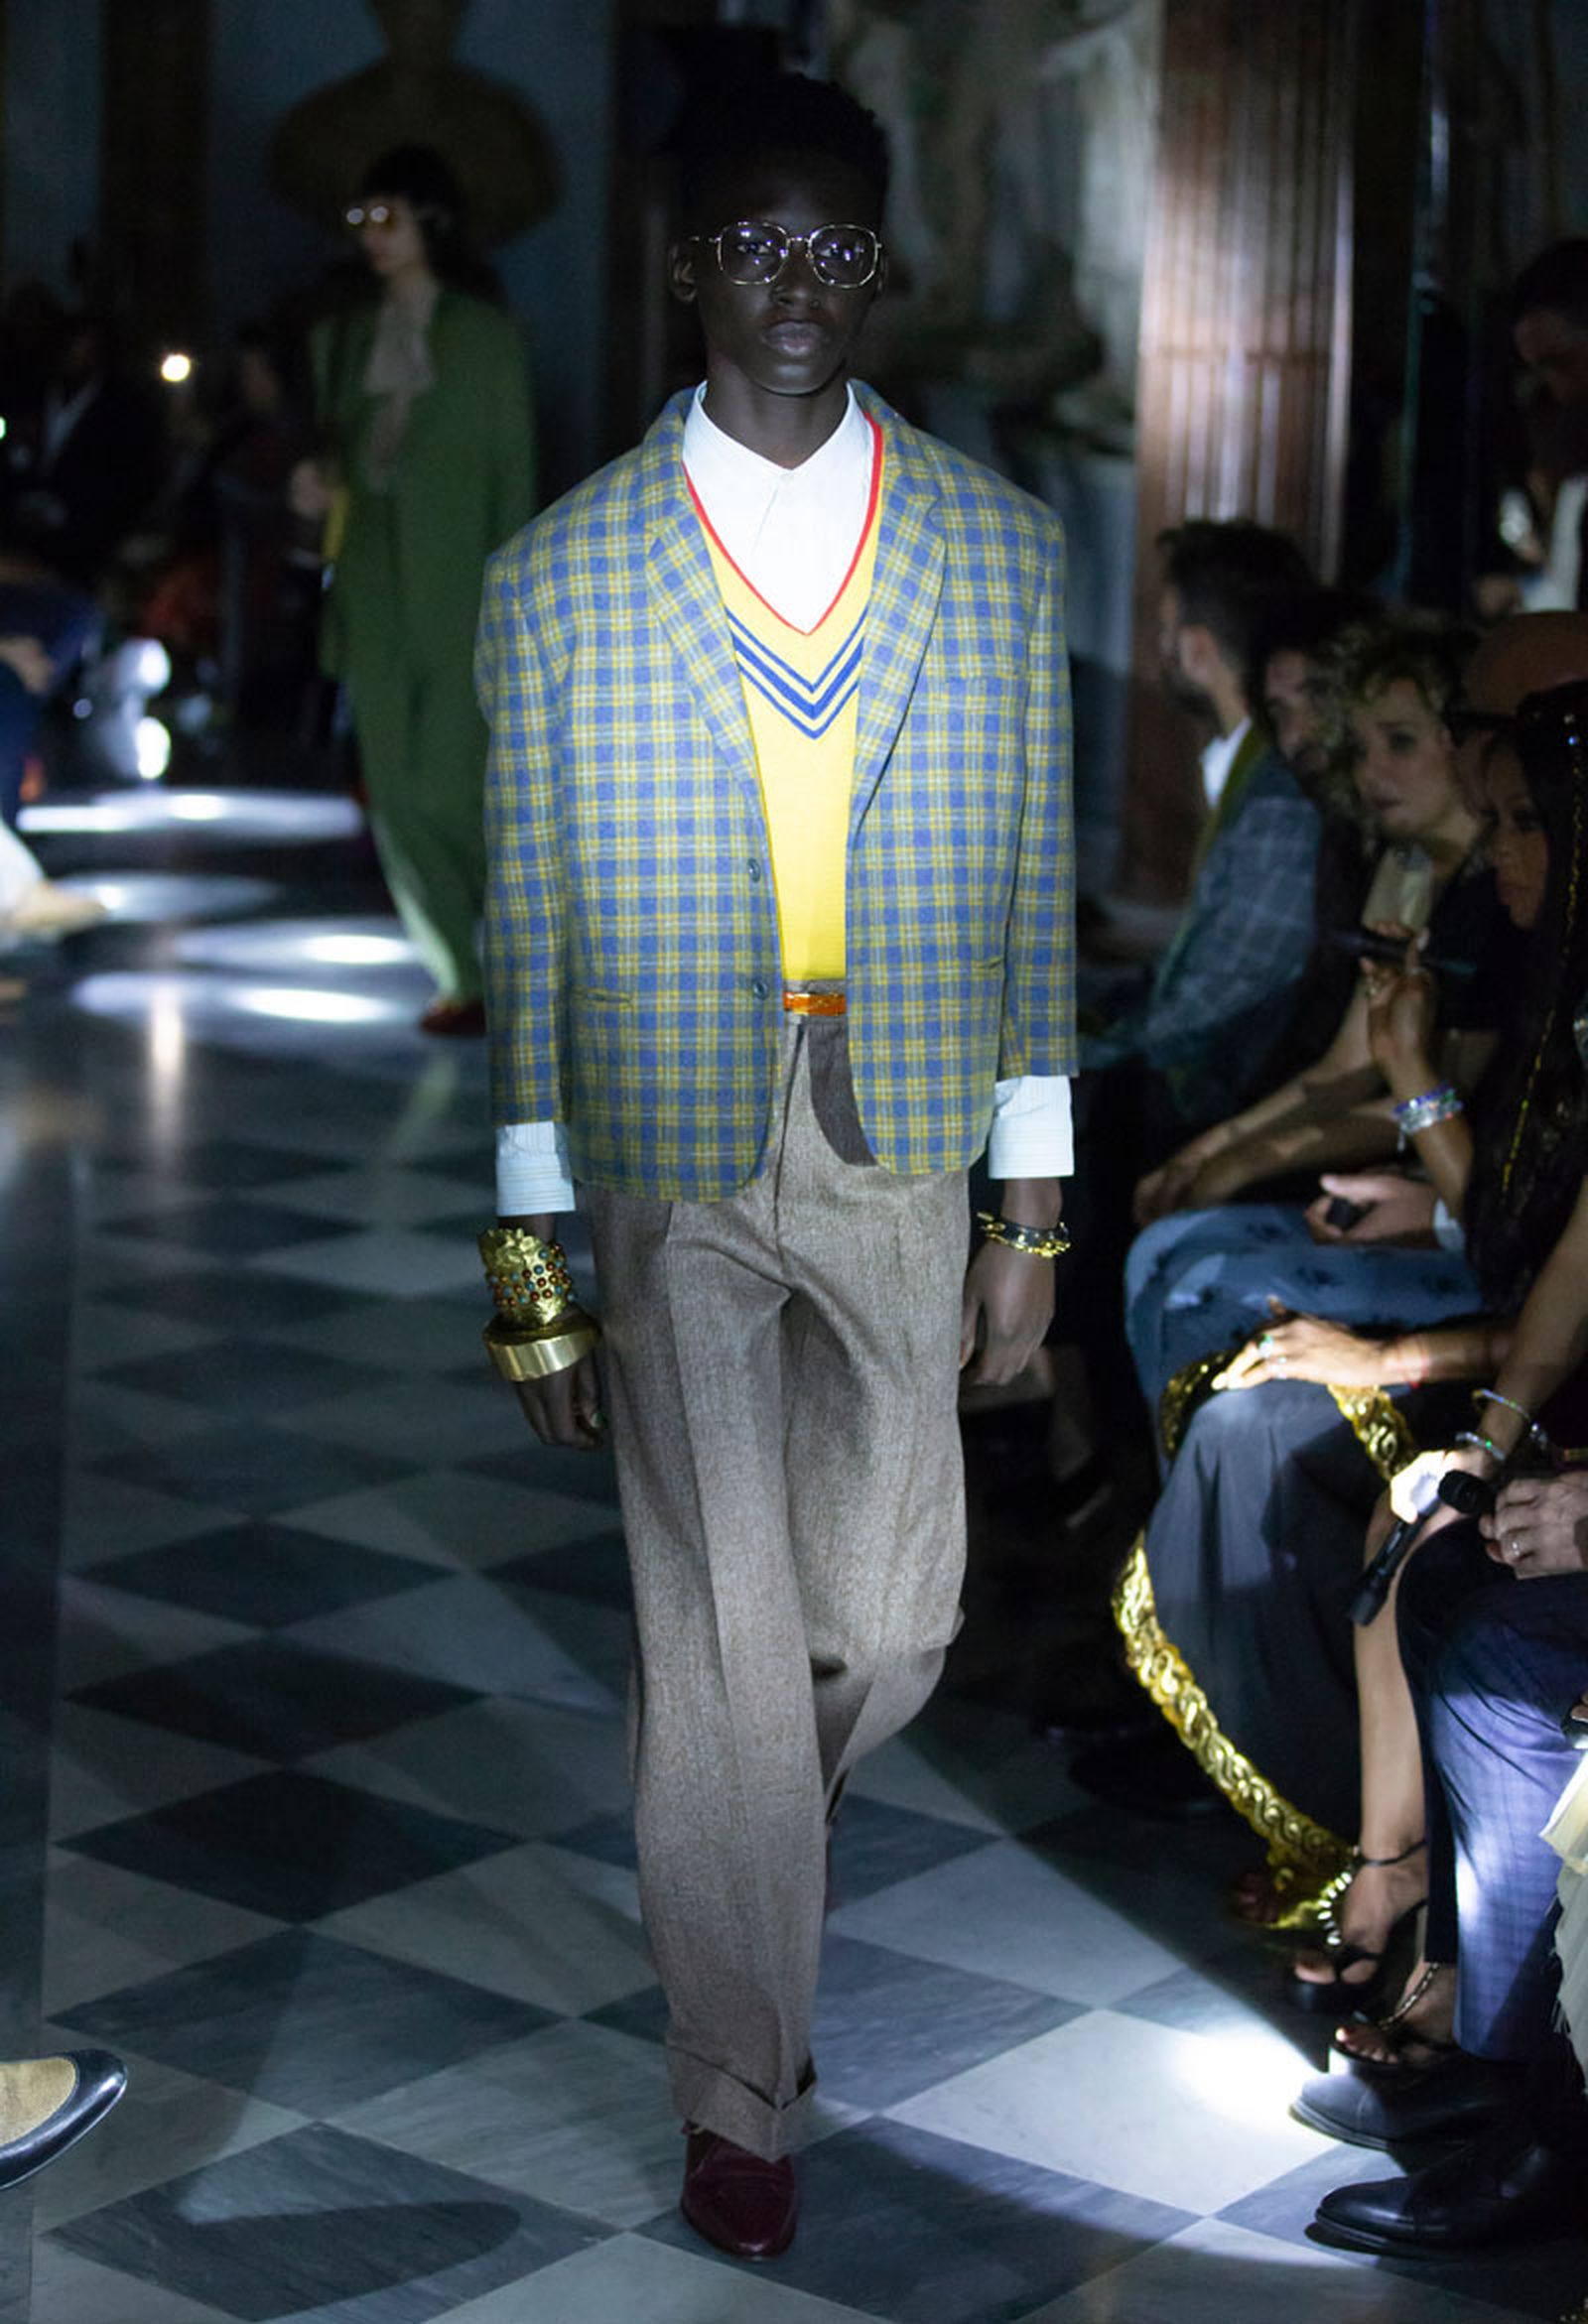 43gucci cruise 2020 runway Alessandro Michele asap rocky harry styles